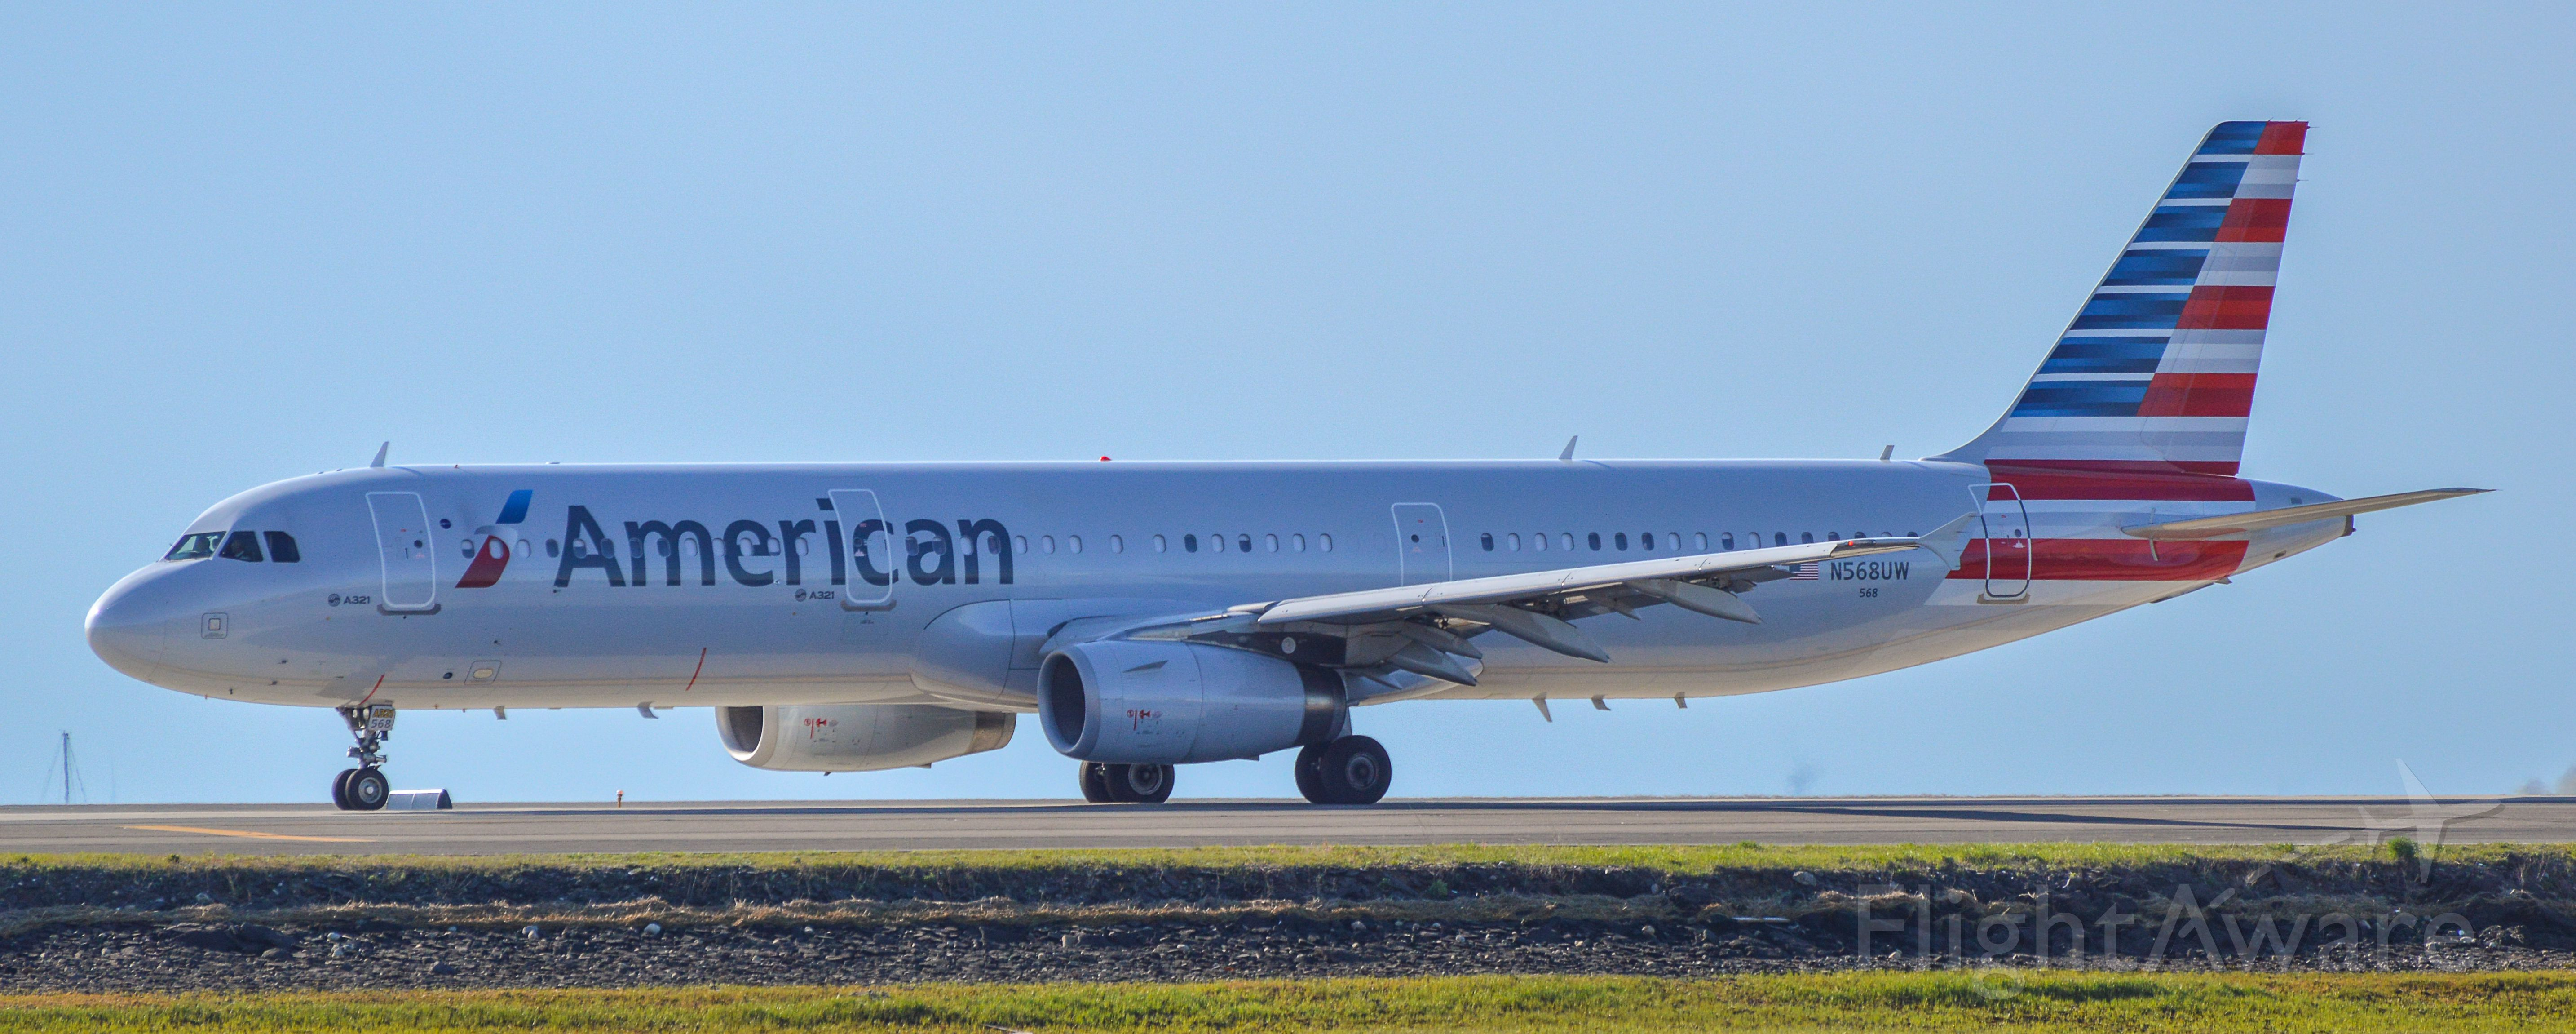 Airbus A321 (N568UW) - Shot with a Nikon D3200 w/ Nikkor 70-300mmbr /Best viewed in Full Size